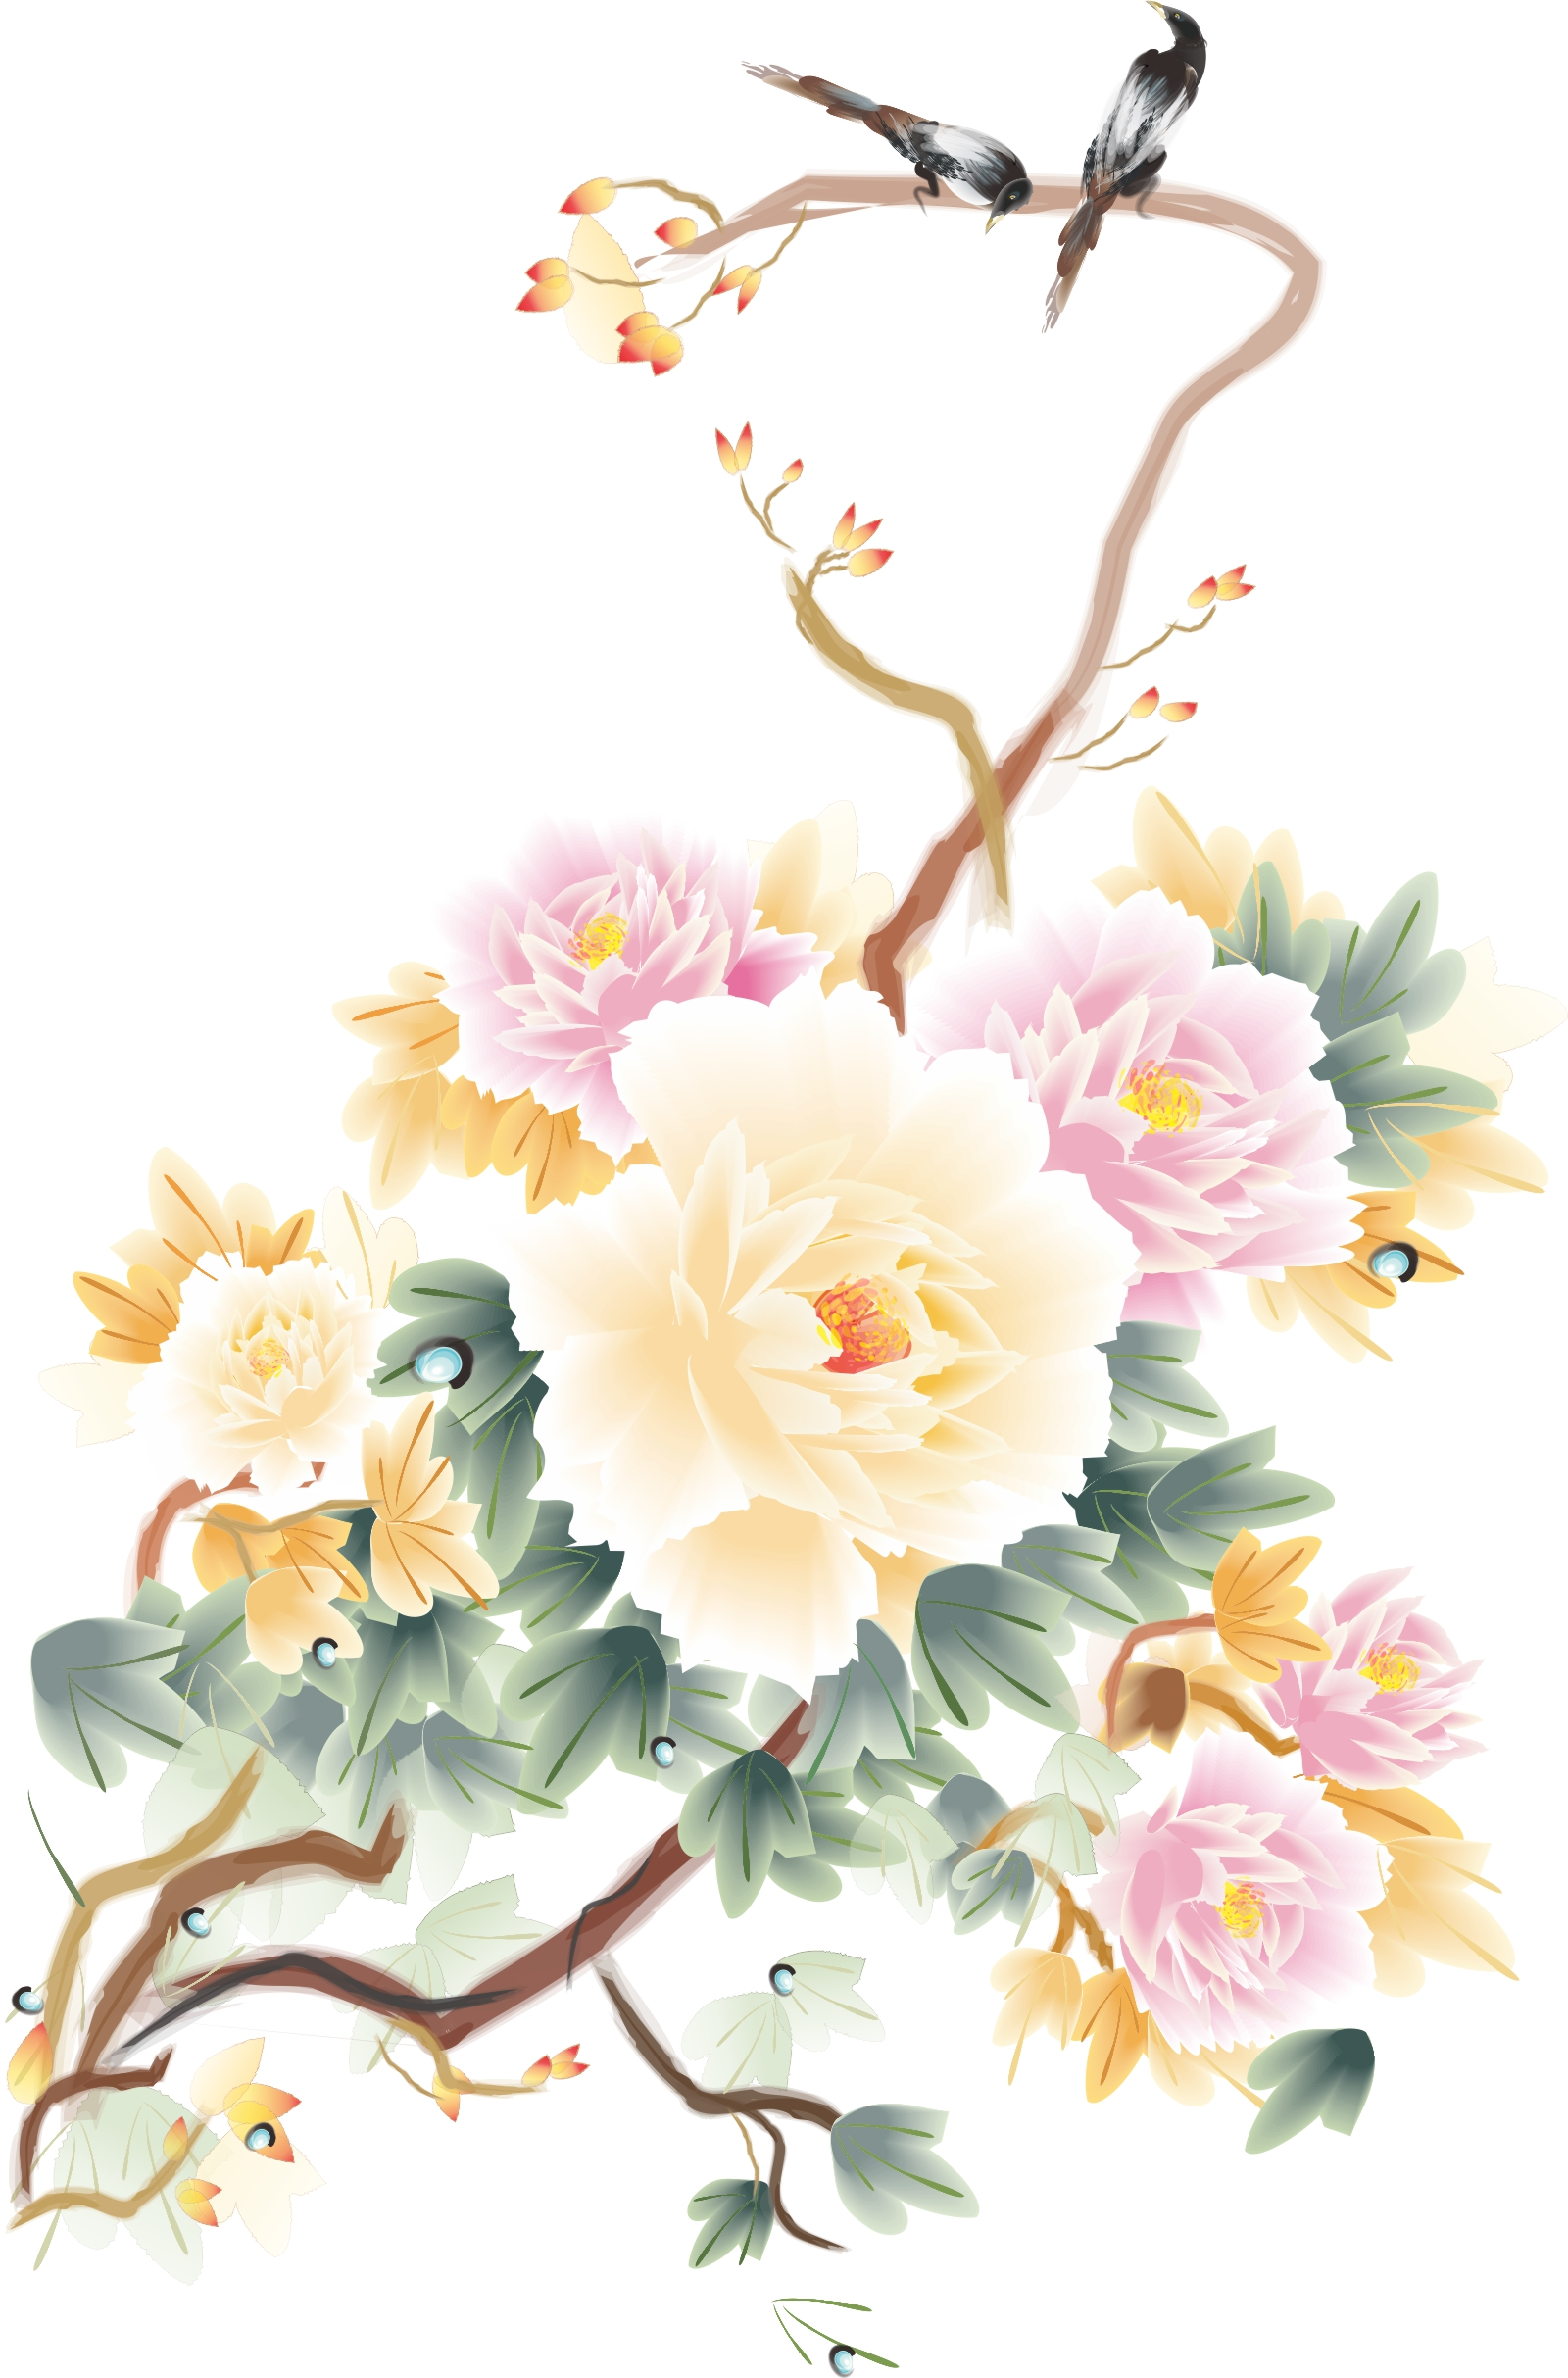 Peony flowers vector pictures China CorelDRAW Vectors CDR Free Download